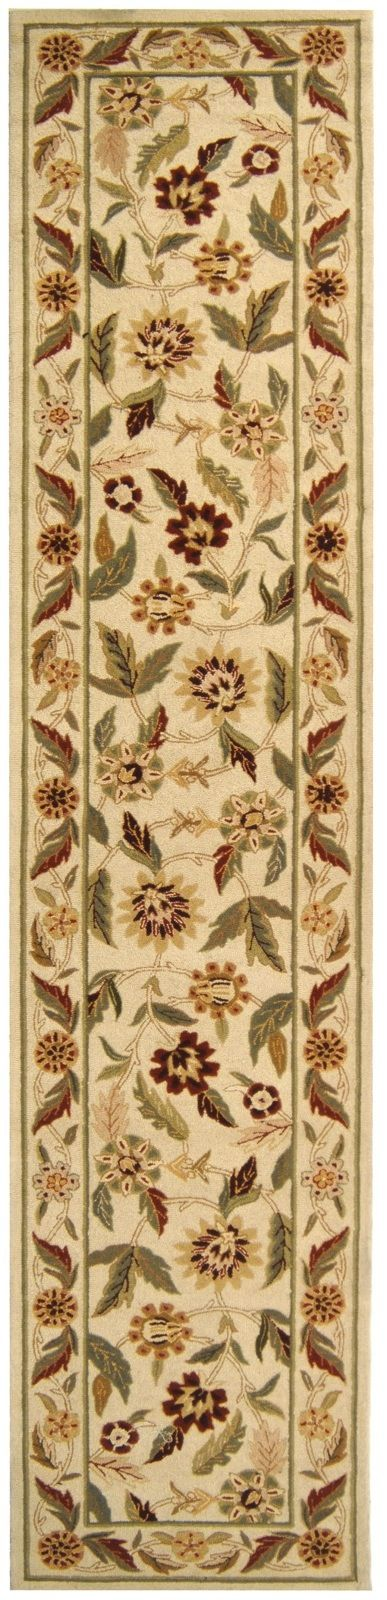 safavieh chelsea country & floral area rug collection